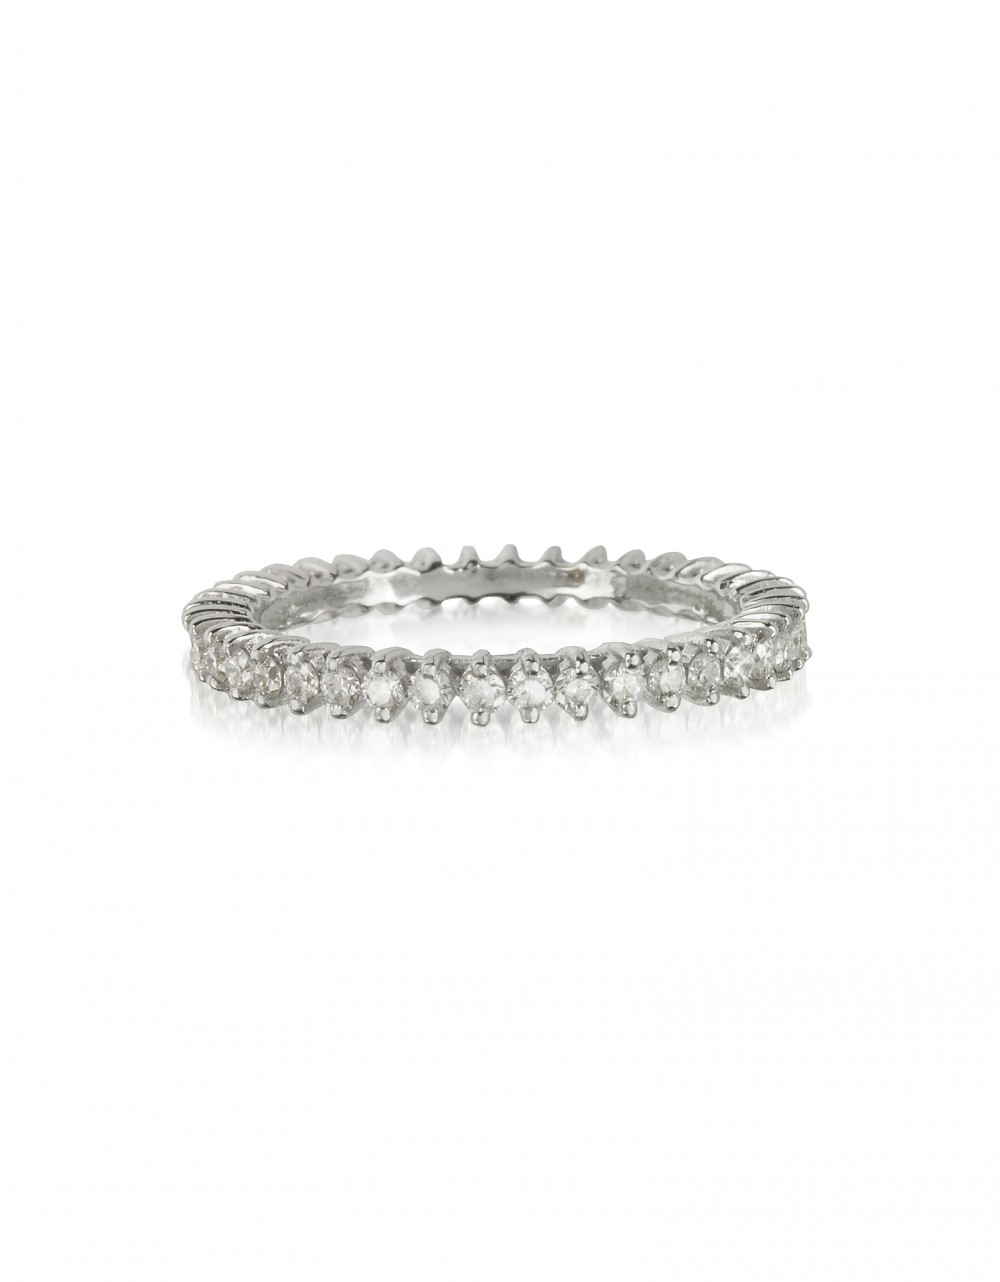 Forzieri Rings White Gold and Diamonds Eternity Band Ring